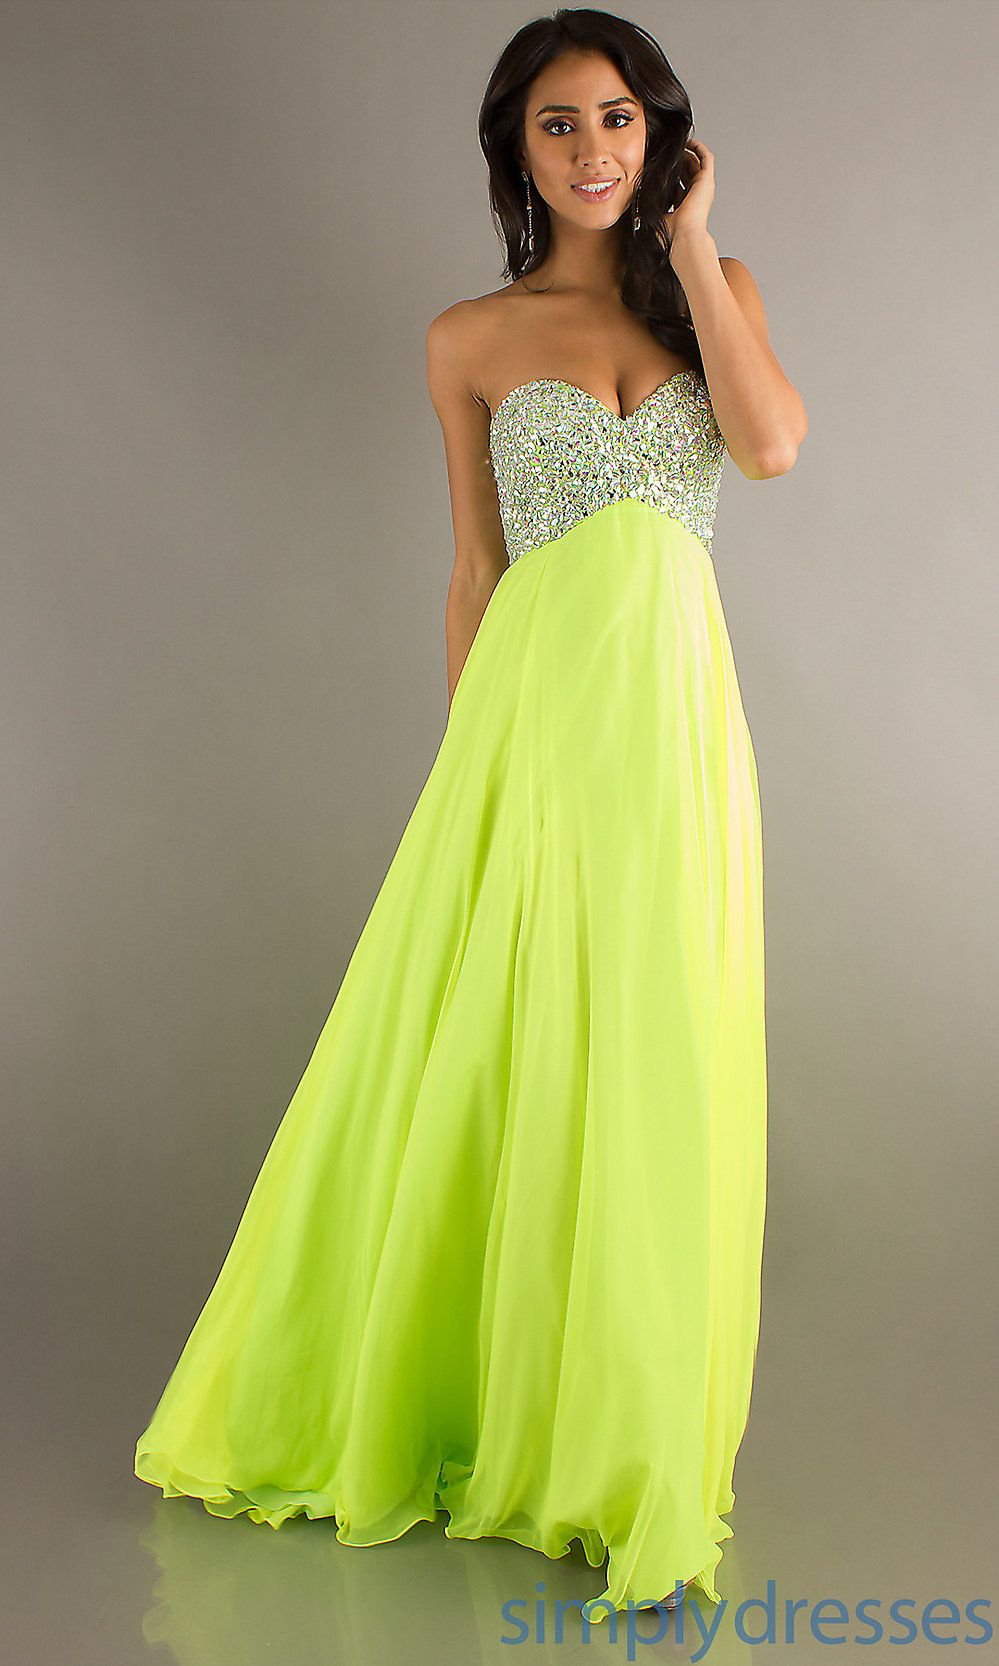 Bright prom dresses google search cute dresses pinterest green formal dresses ombrellifo Image collections